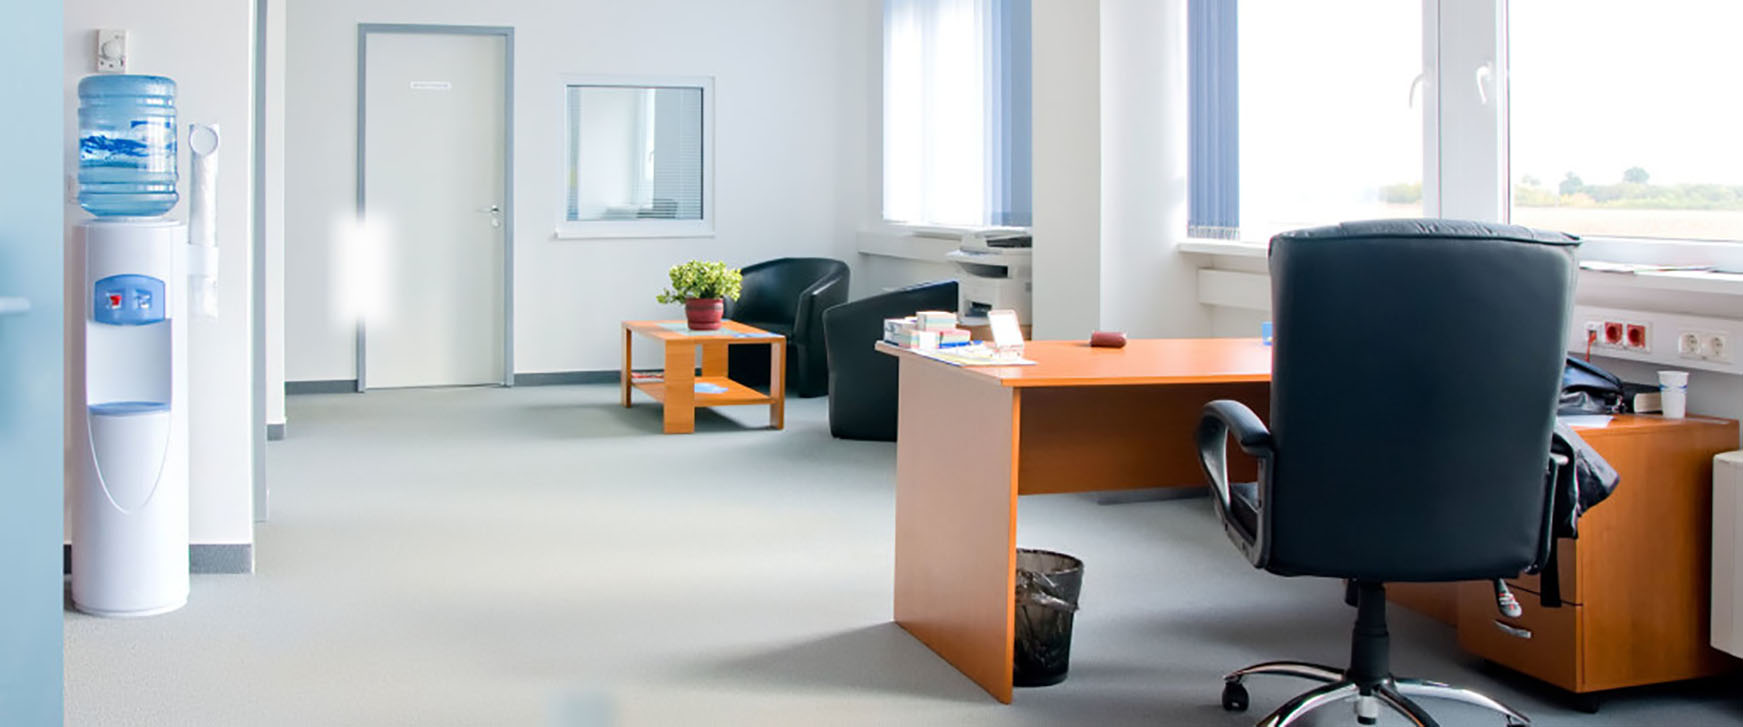 commercial office cleaning, commercial janitorial services